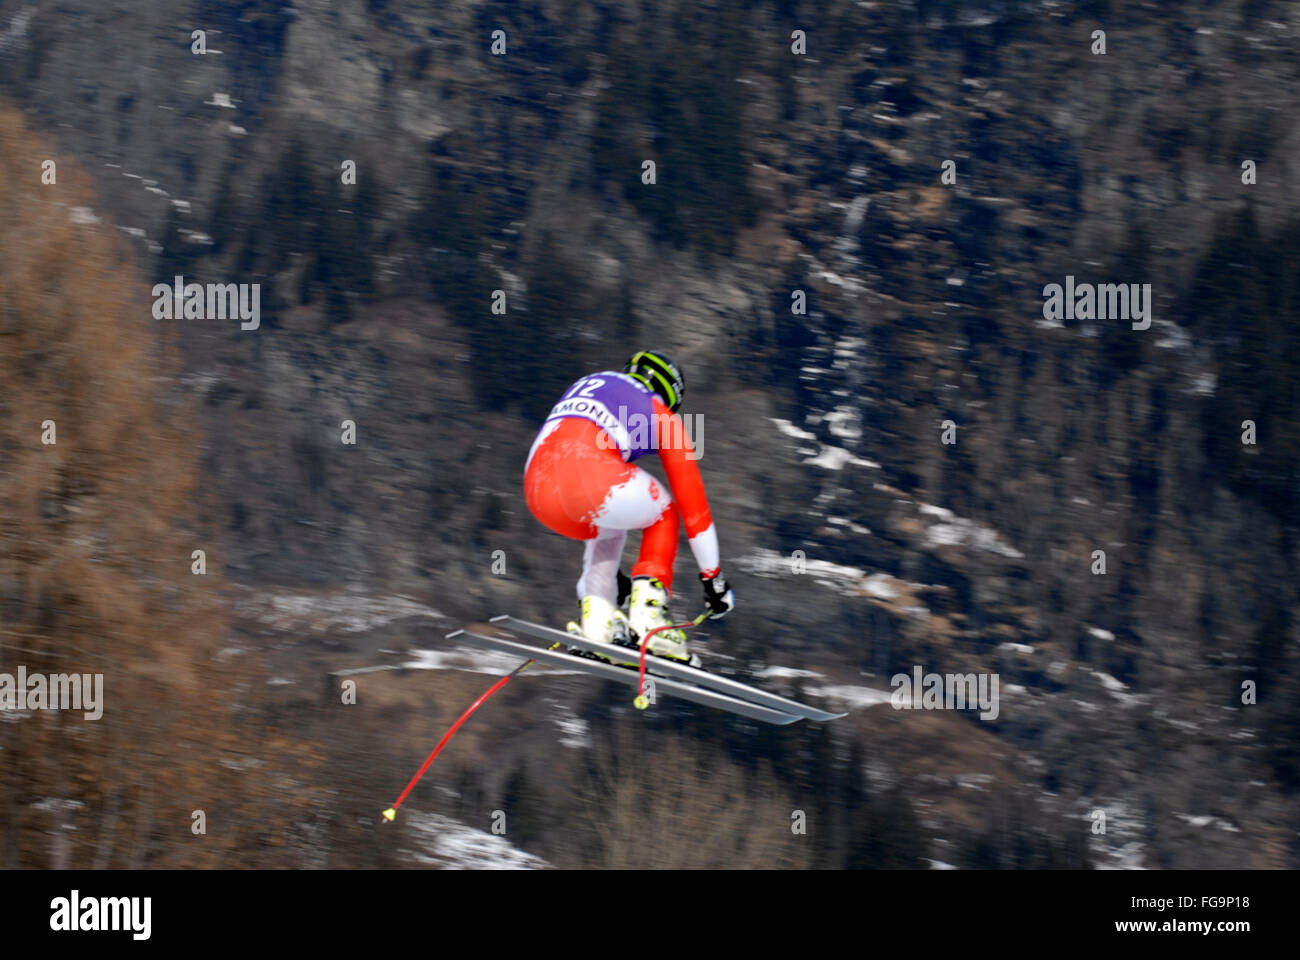 Mens downhill ski racer in the air - Stock Image